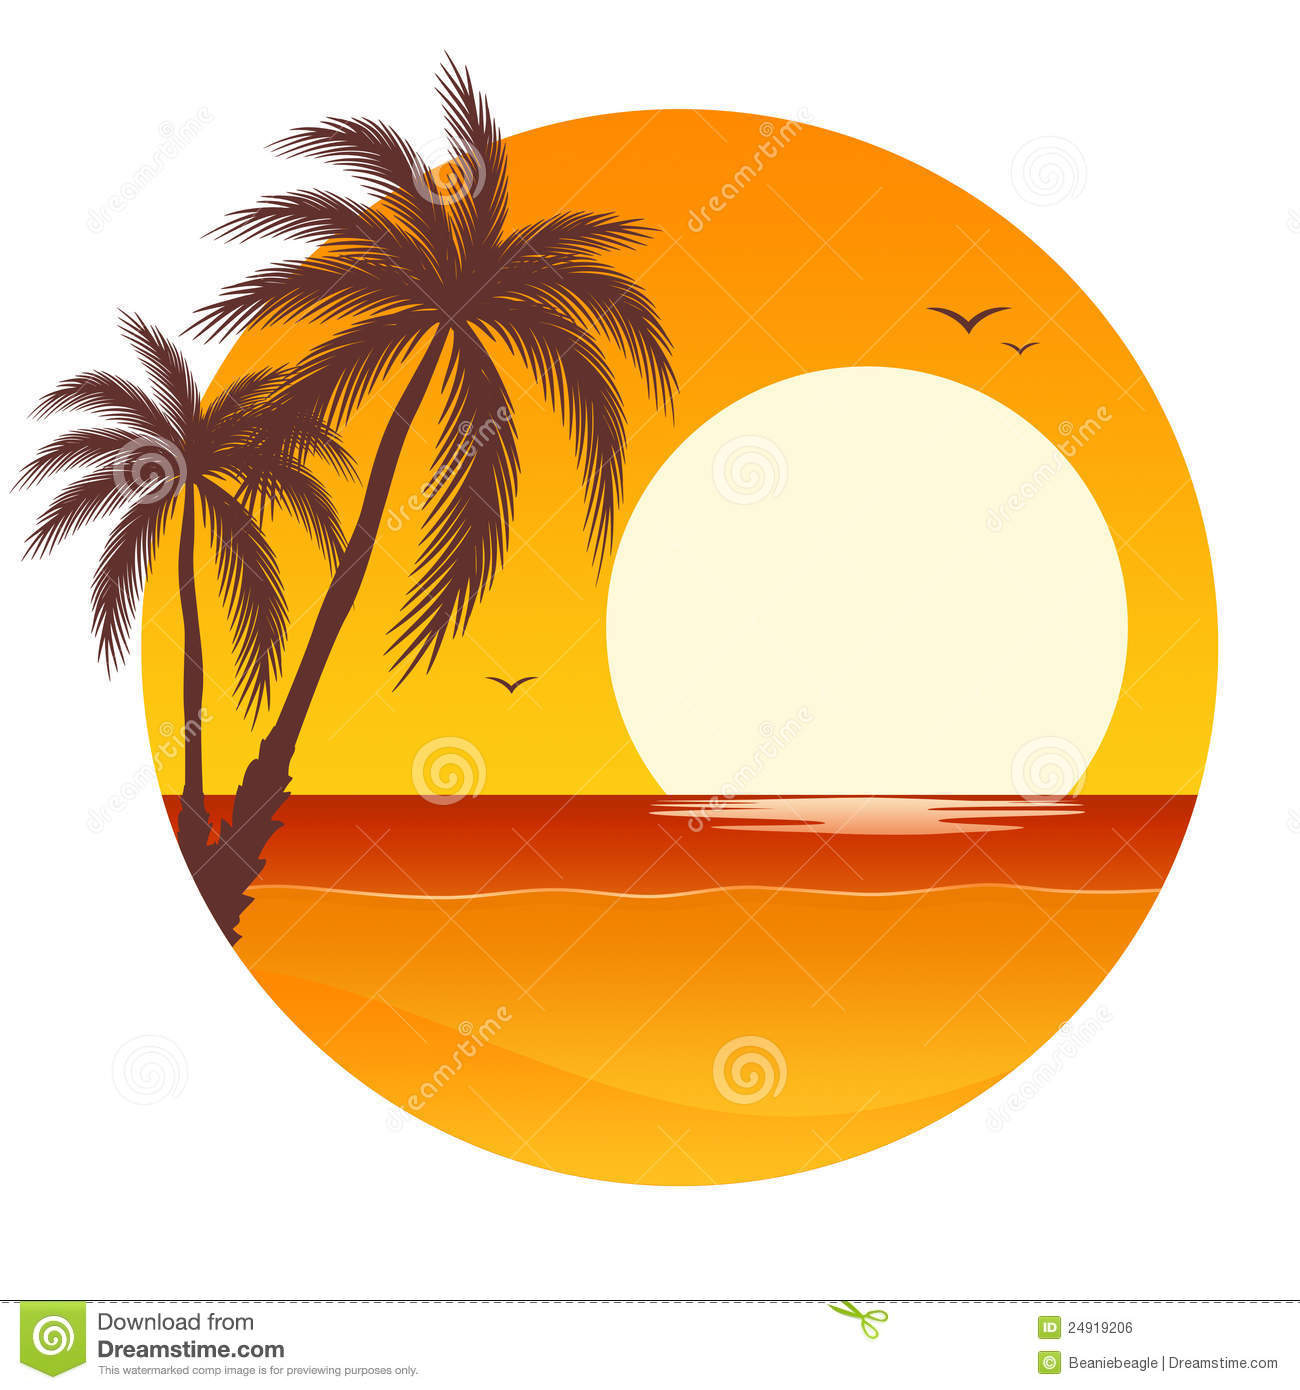 Afternoon sunset clipart.